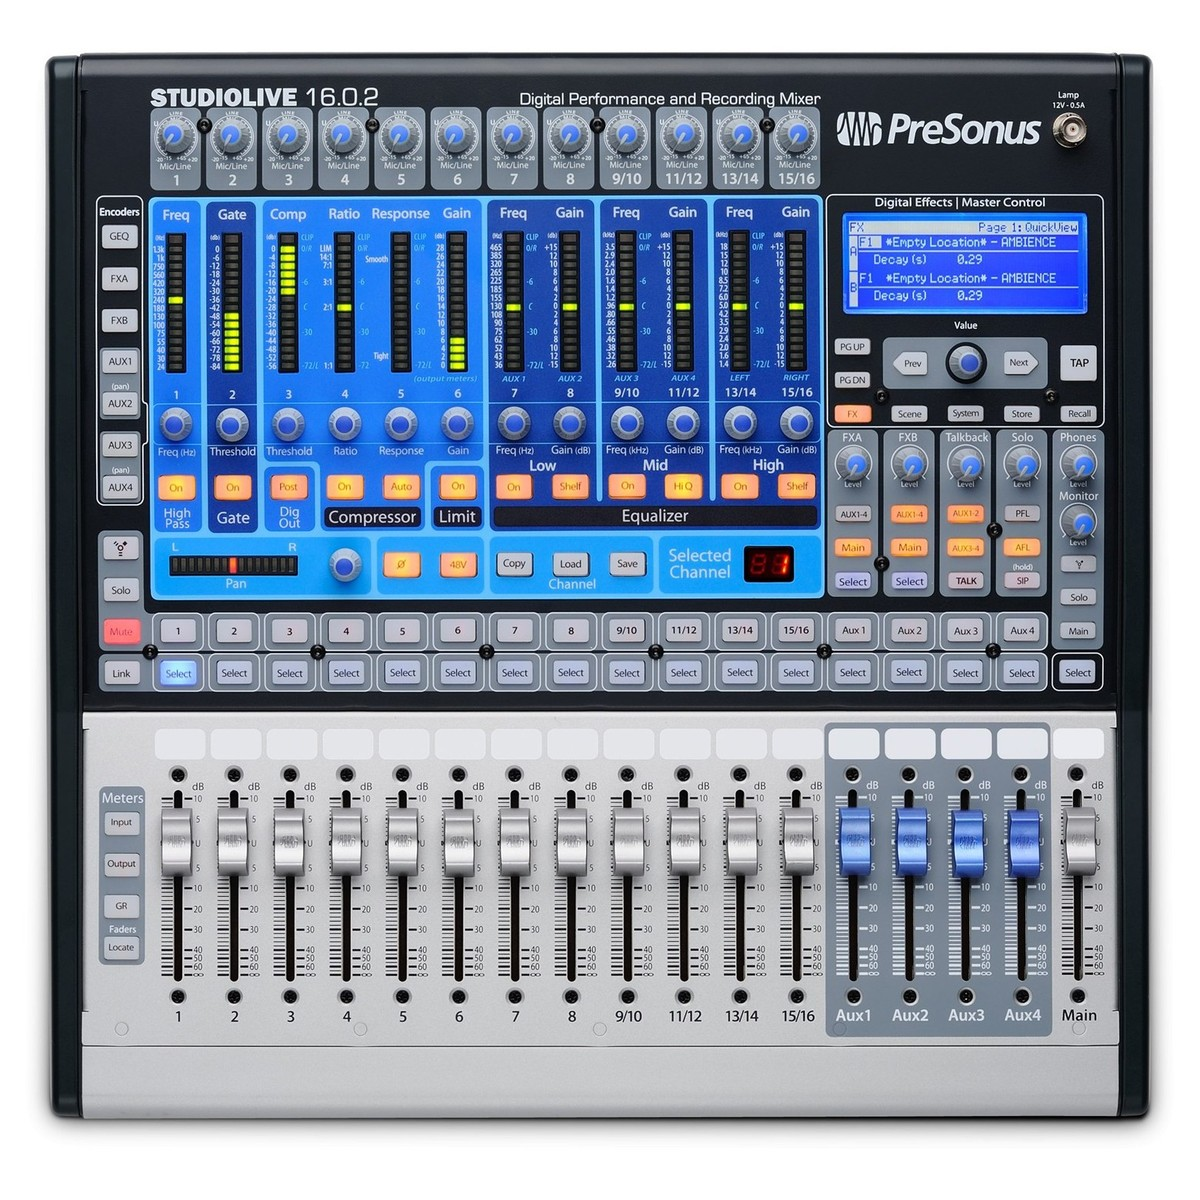 presonus studiolive 16 0 2 usb digital mixer at gear4music. Black Bedroom Furniture Sets. Home Design Ideas